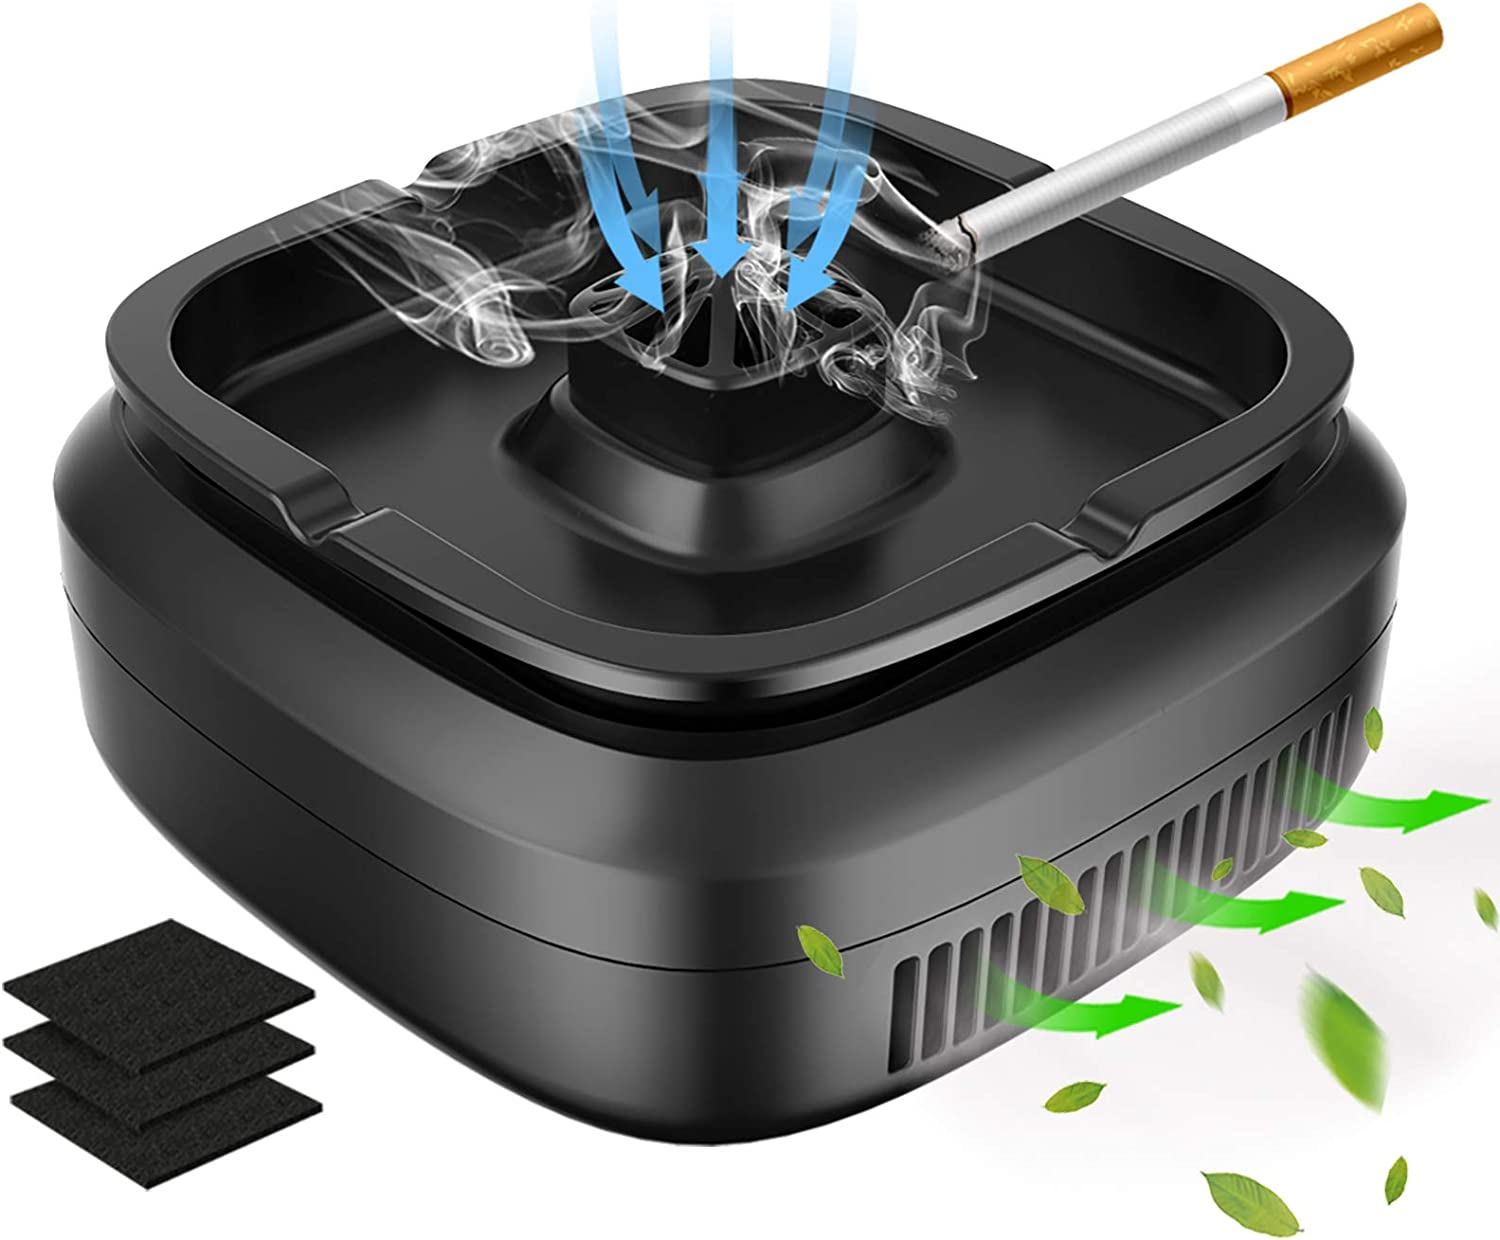 GESPERT Multifunctional Smokeless Ashtray for Cigarette Smoker, USB Rechargeable Smoke Grabber Ash Tray for Indoor Outdoor Home Office Car (Black-4)